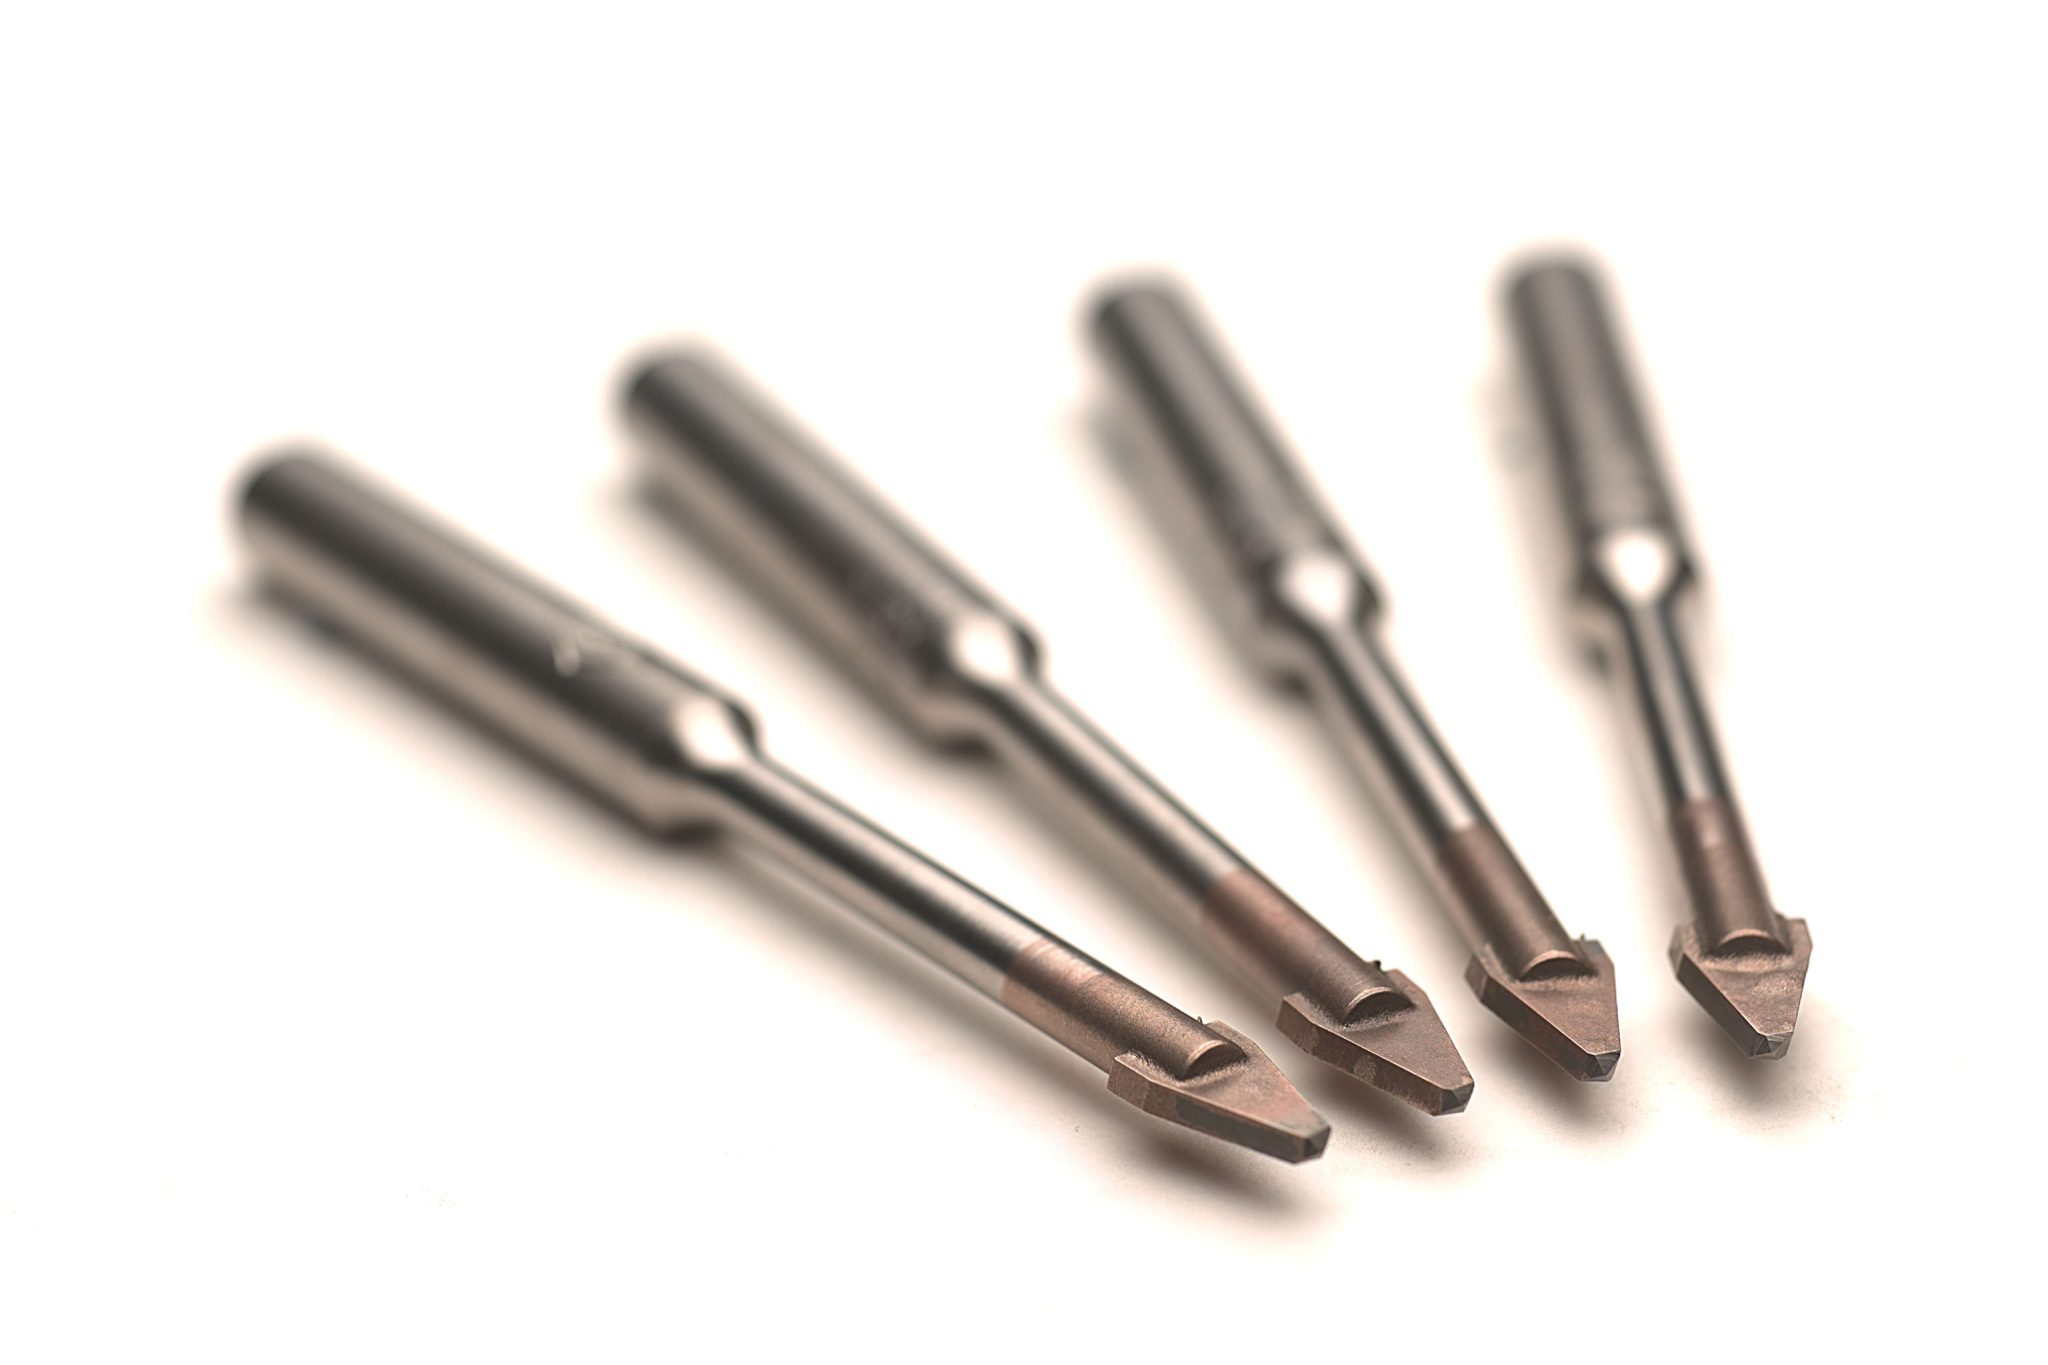 Porcelain Tile Drill Bits - Best drill bit for porcelain tile uk